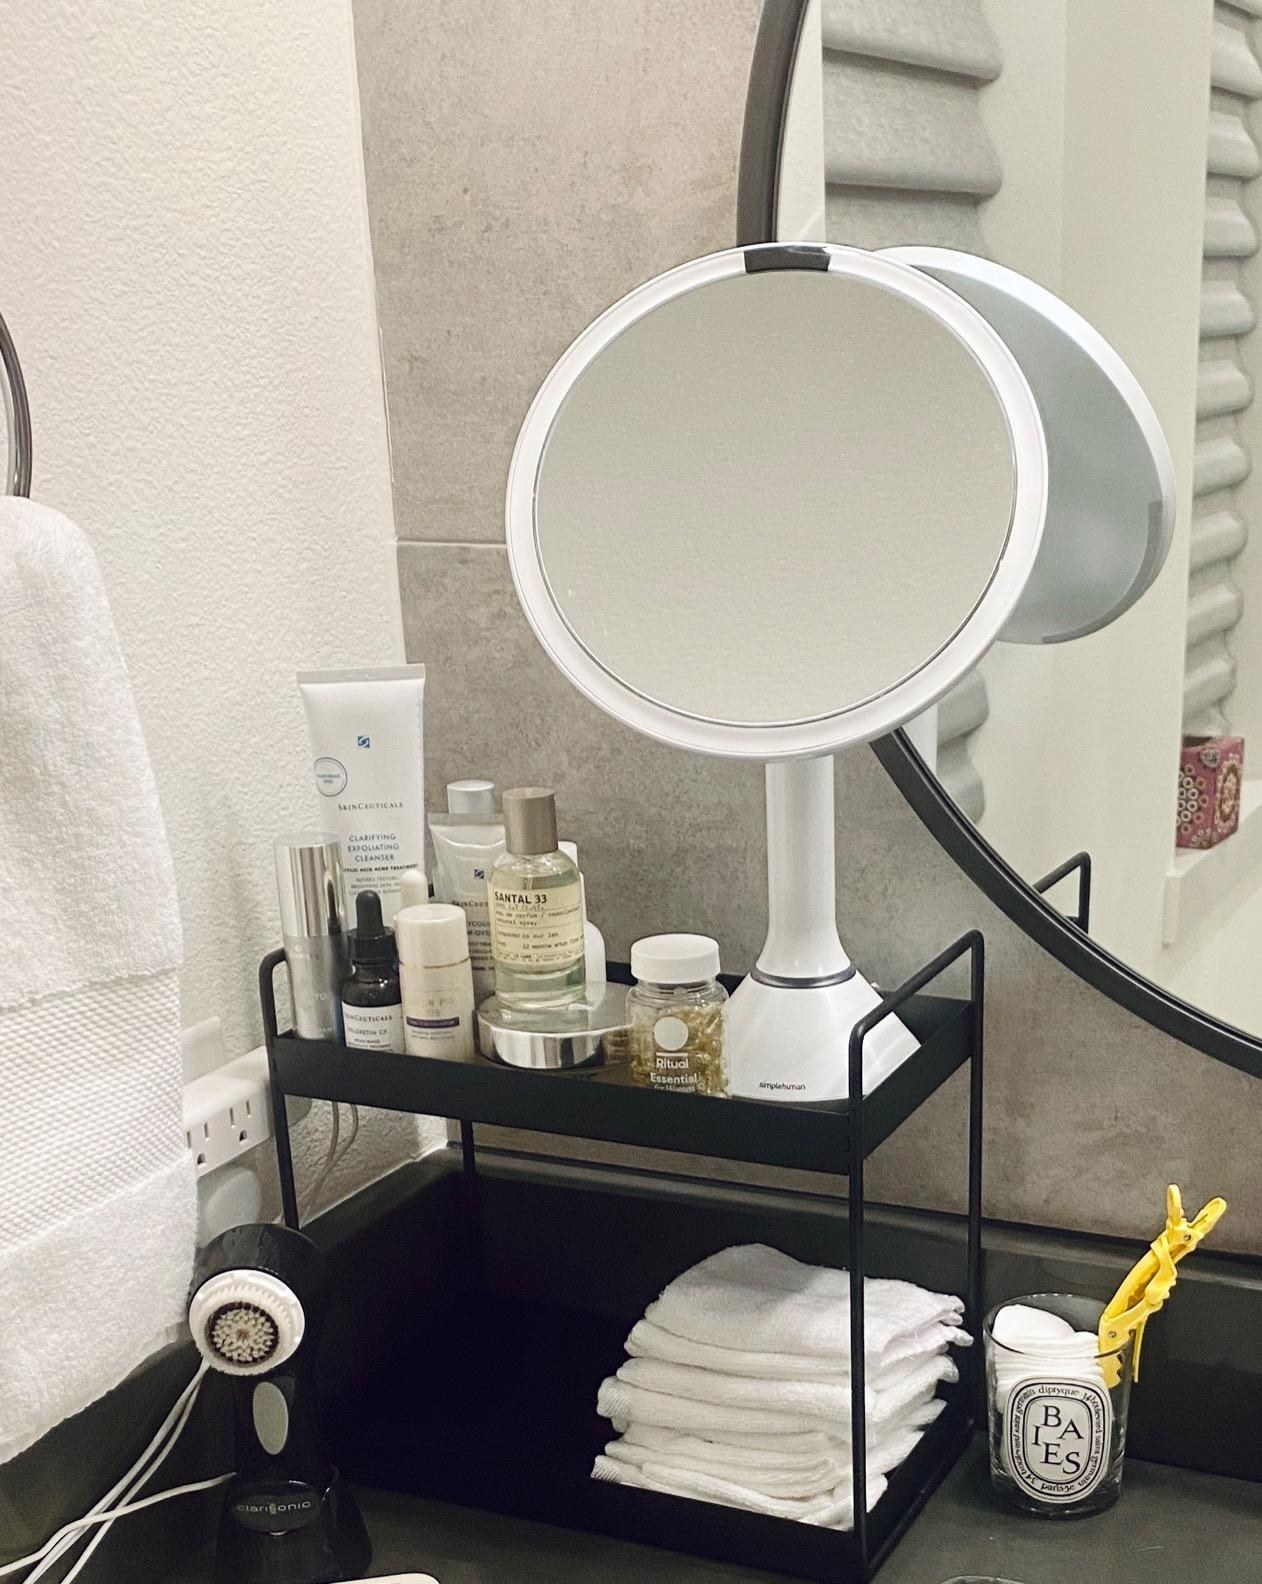 reviewer image of the two-tier black shelves on a bathroom counter